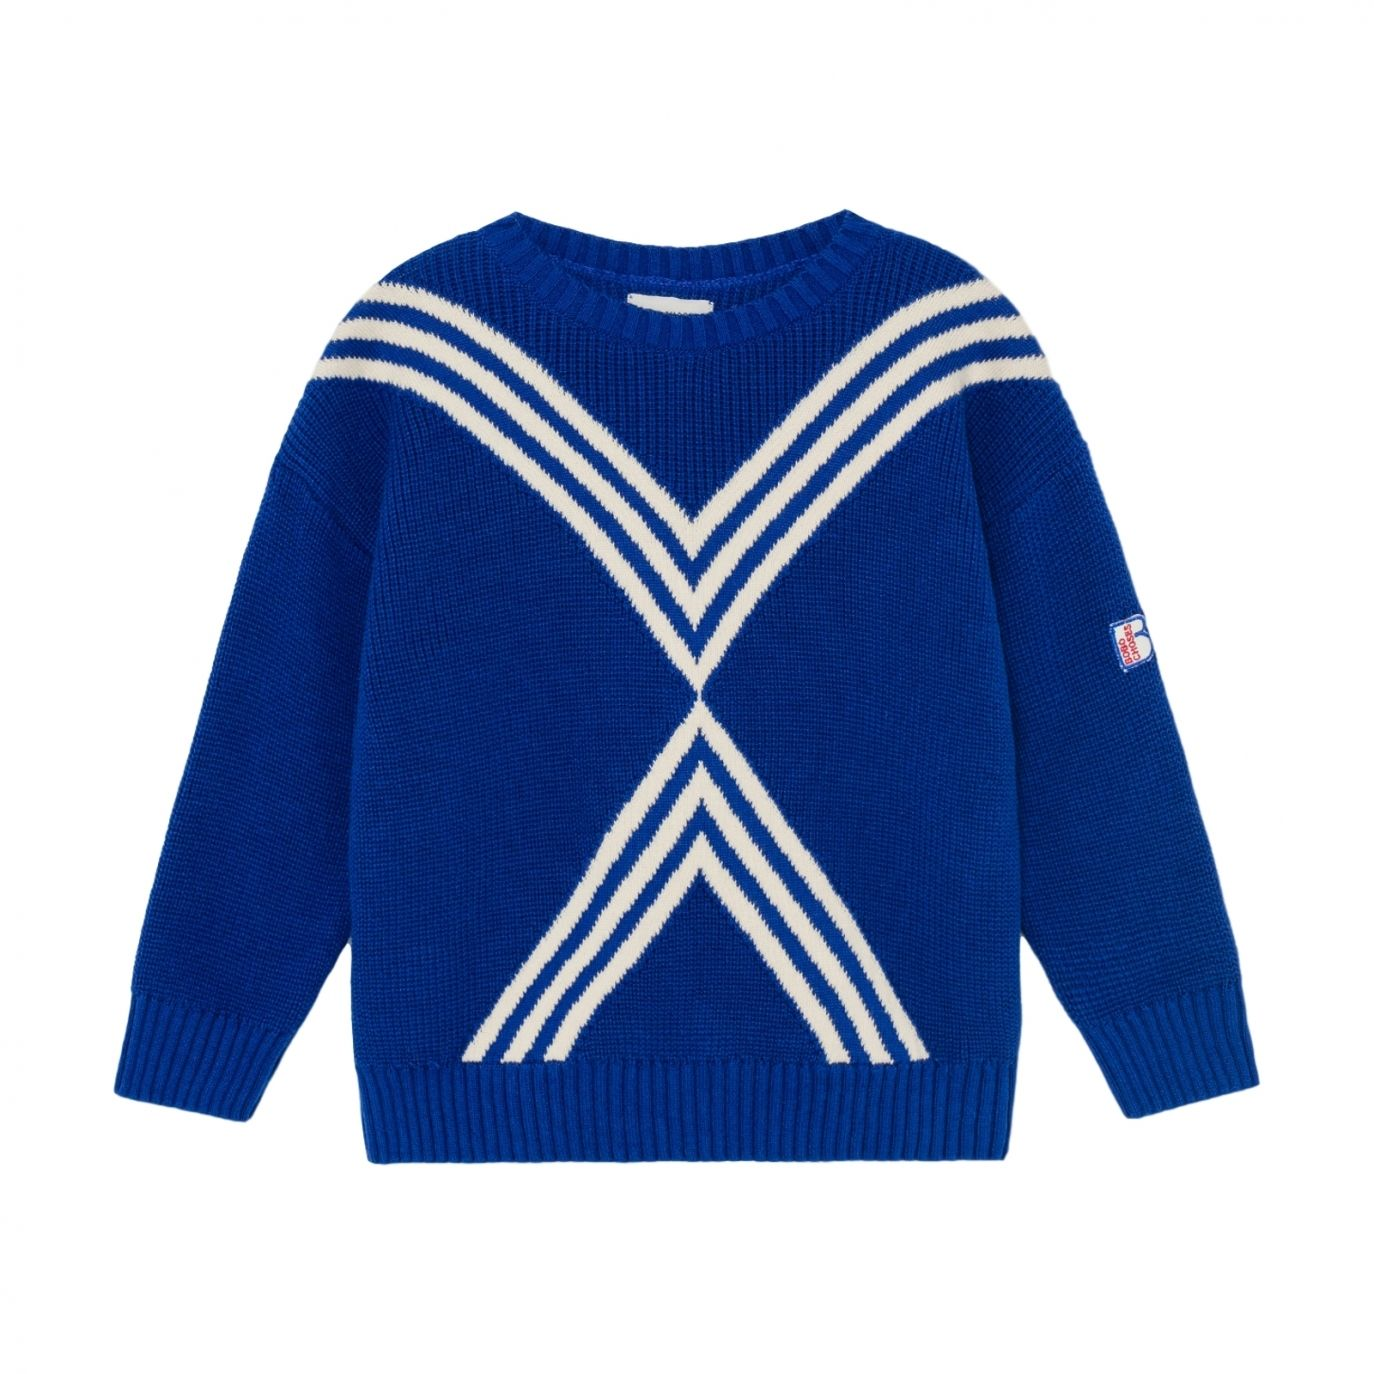 Bobo Choses - Sweter Three Stripes niebieski - 1